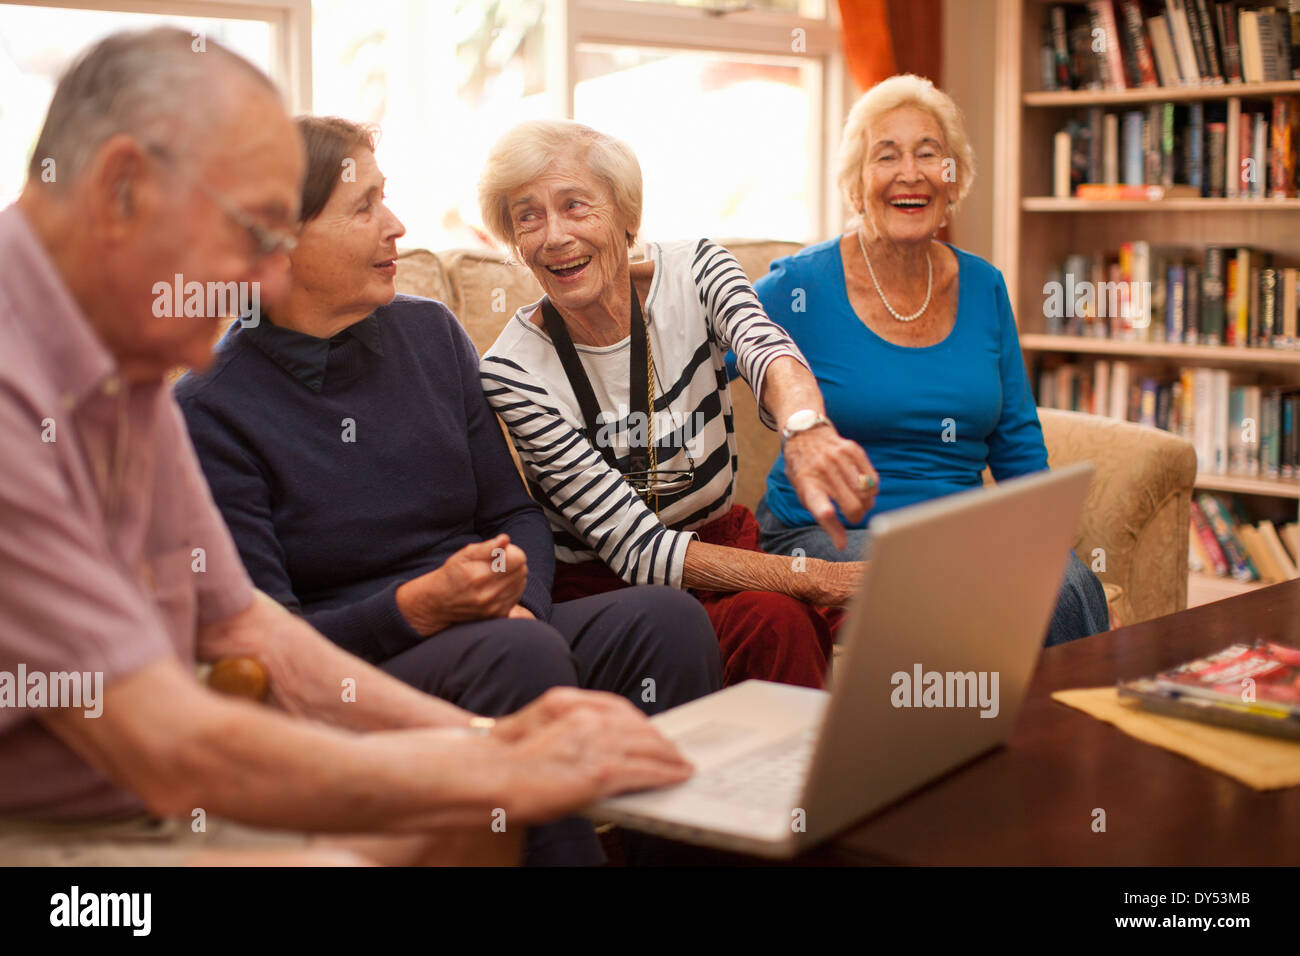 Senior man and female companions in retirement villa - Stock Image